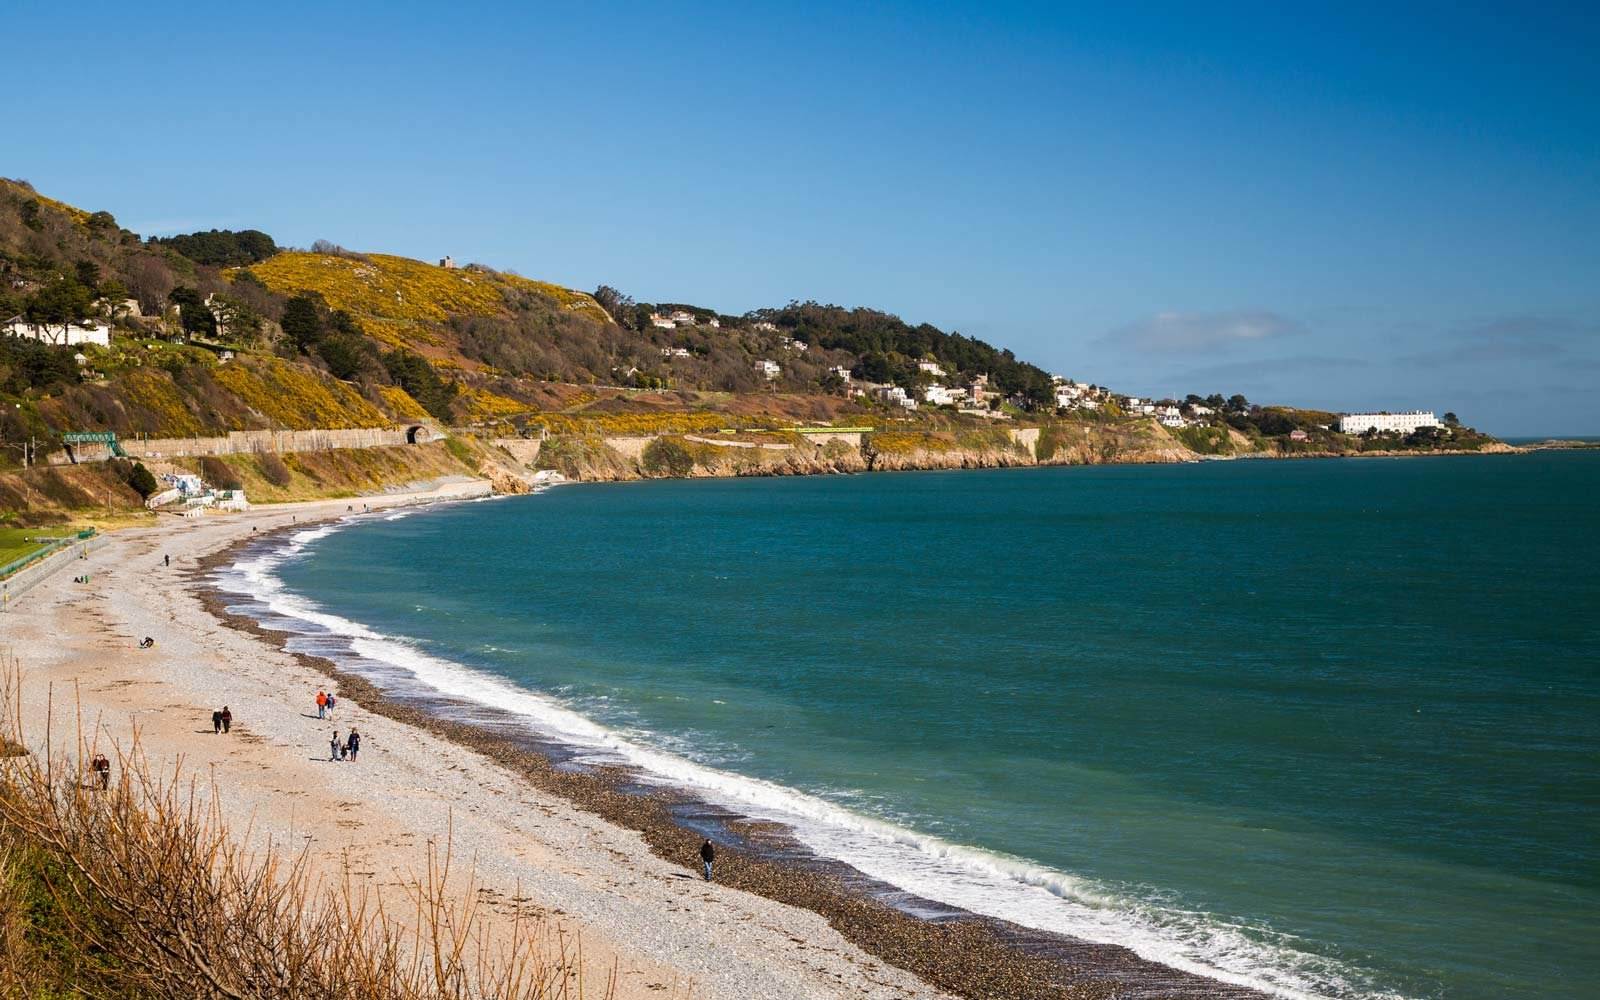 Killiney Beach in Dublin, Ireland